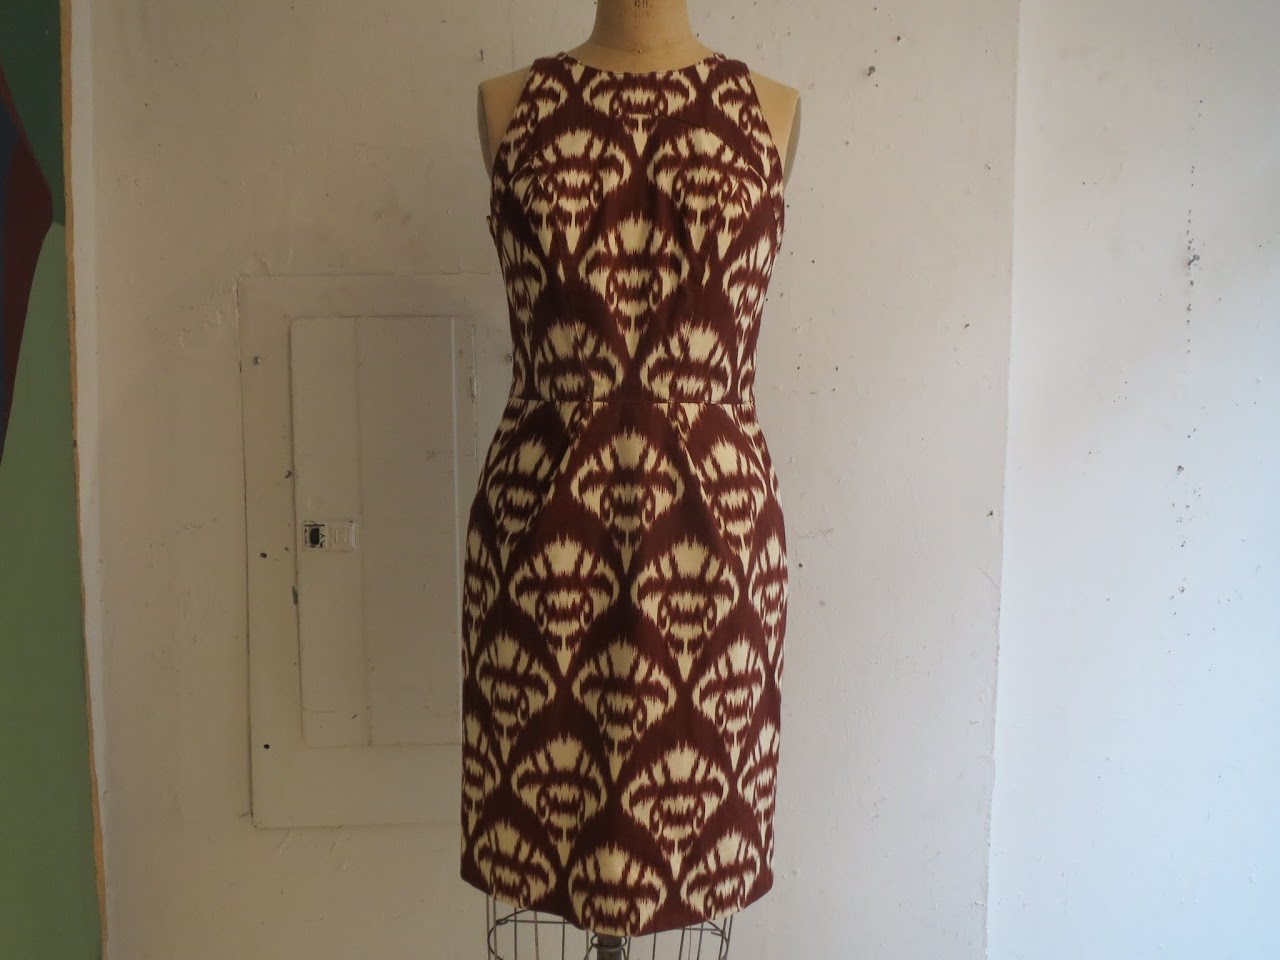 Oscar de la Renta Ikat Dress